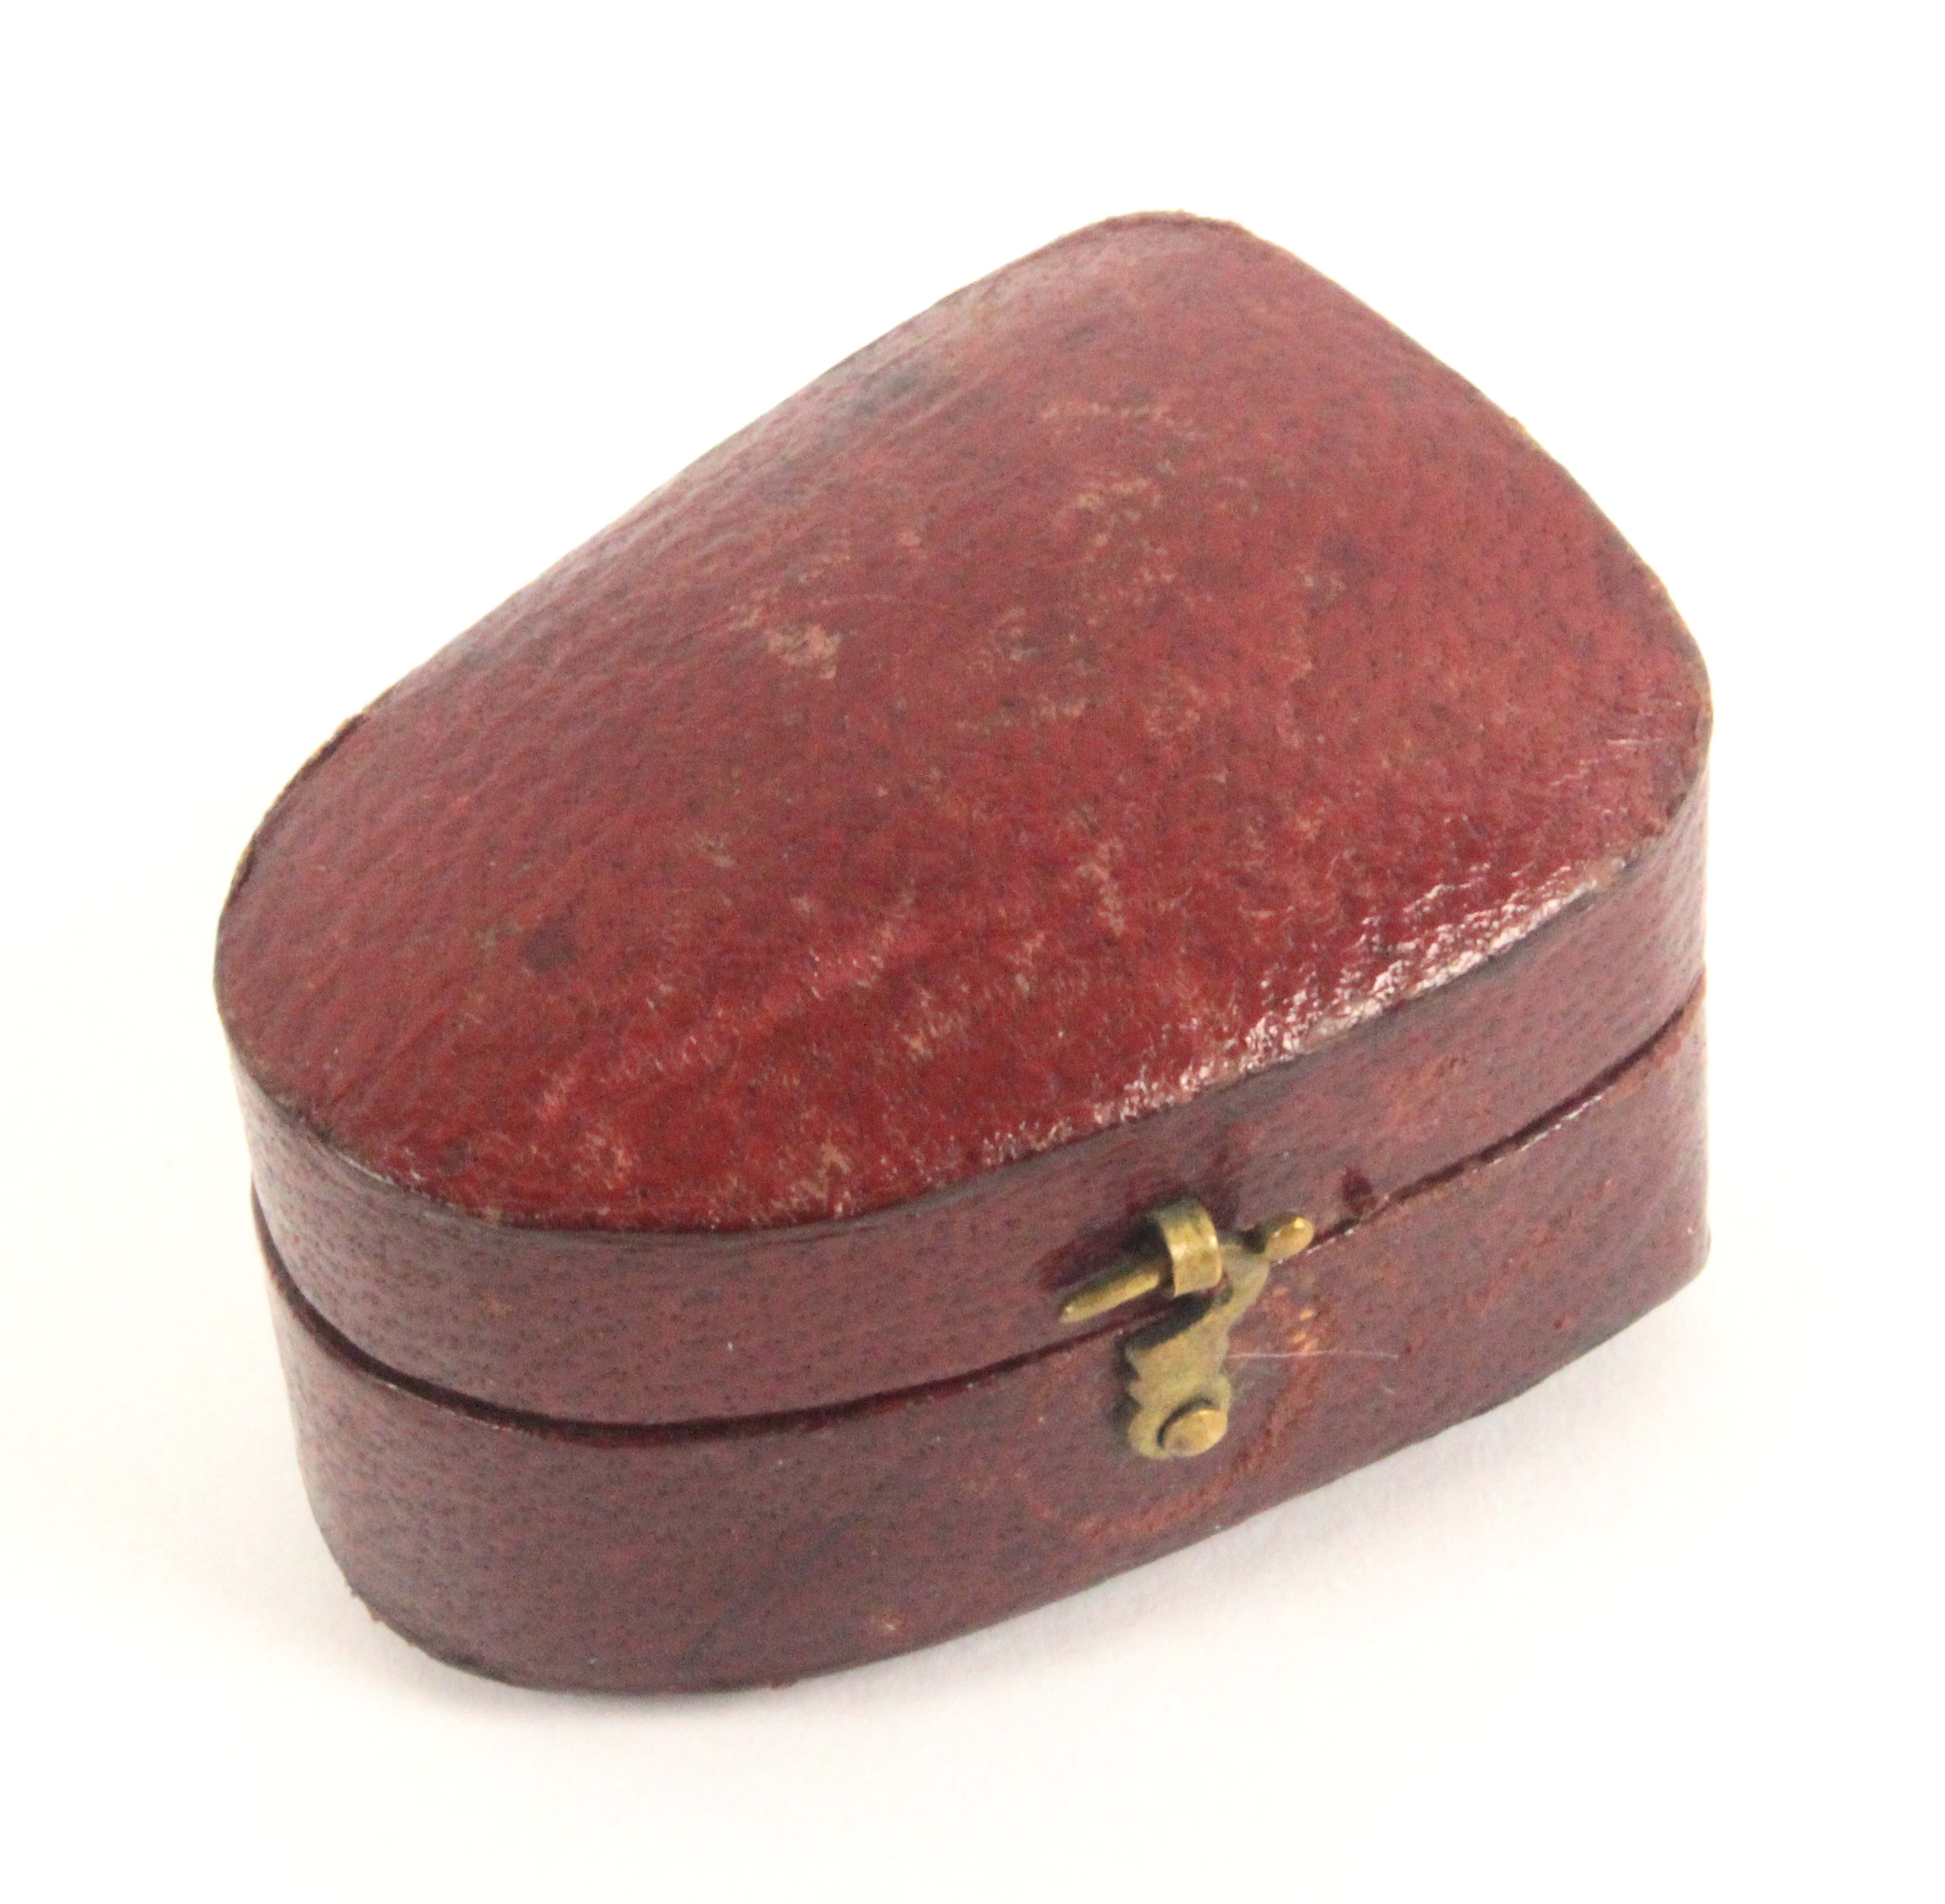 A Palais Royal thimble, with double gilt band and gold shield motif, in a red leather case, hinge - Image 2 of 2